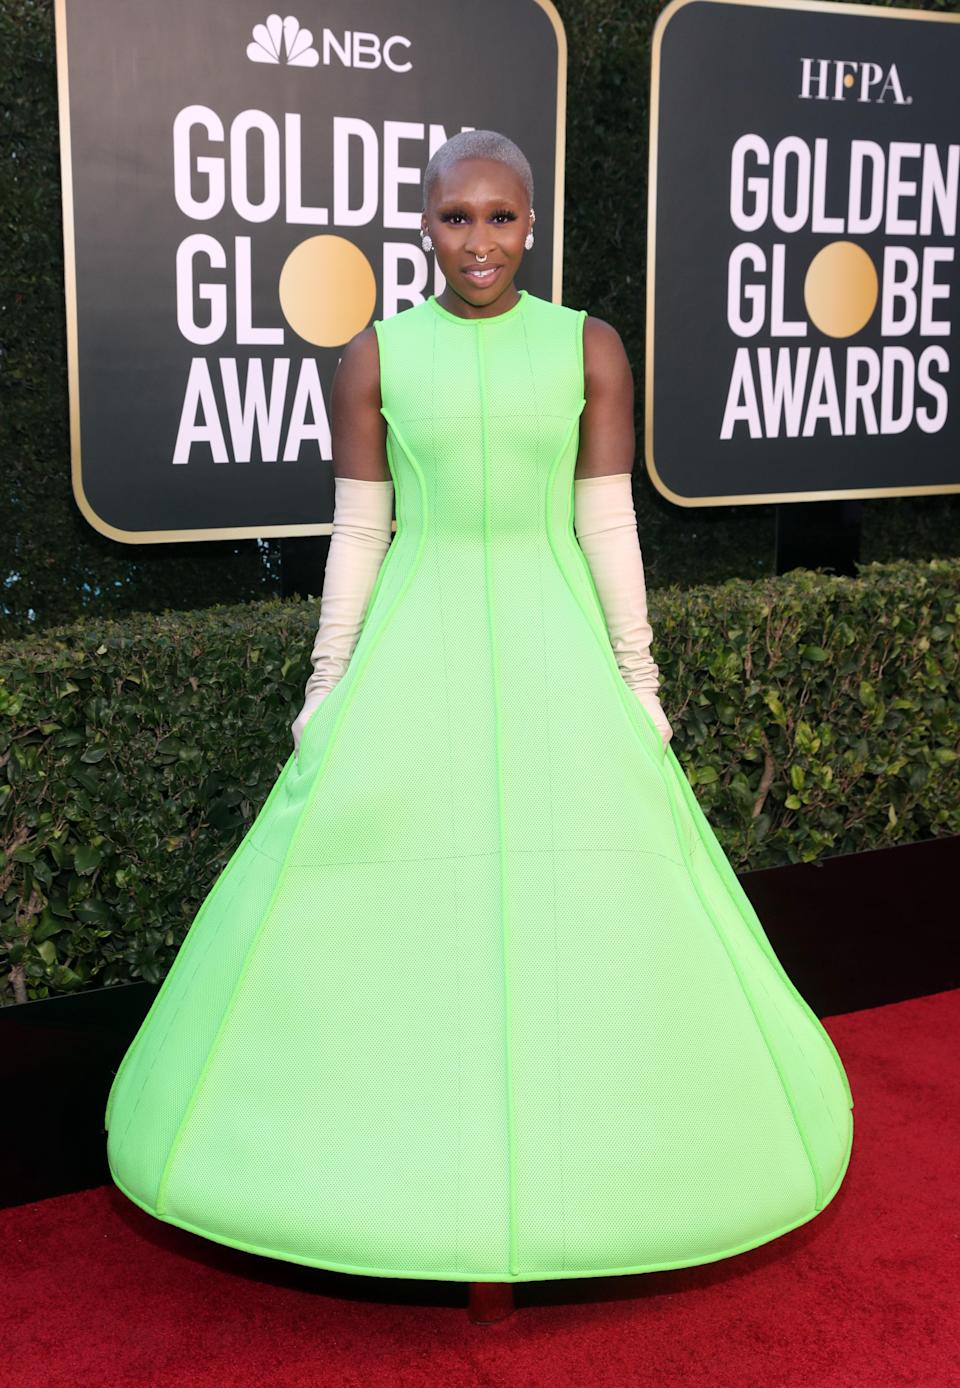 In a can't miss neon green dress and cream-colored gloves, Cynthia Erivo was simply stunning.